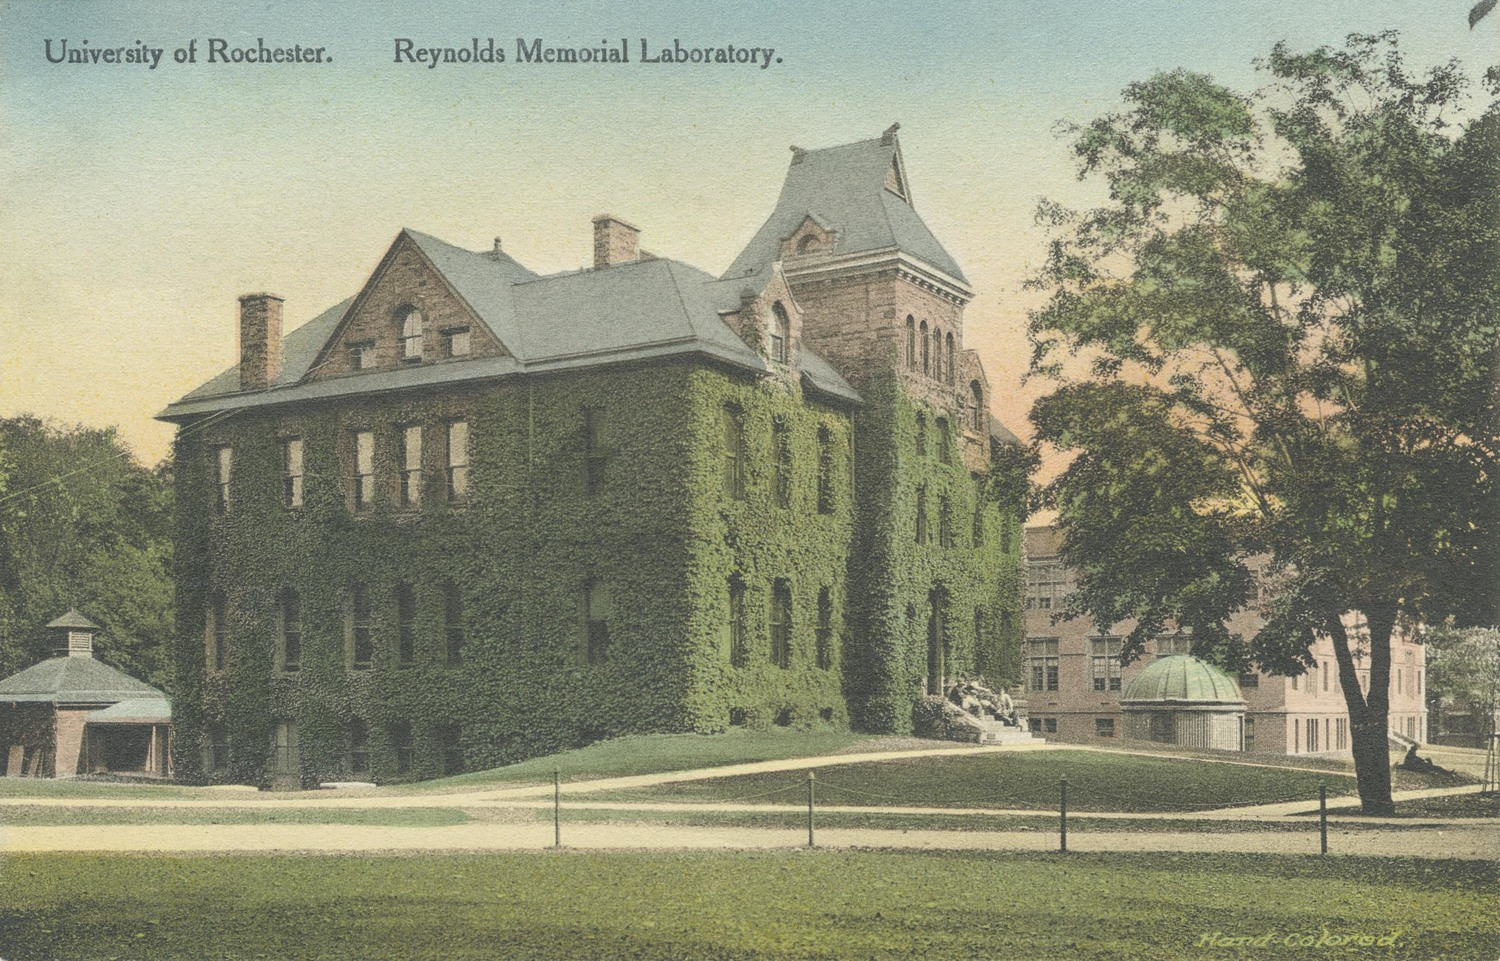 University of Rochester. Reynolds Memorial Laboratory.